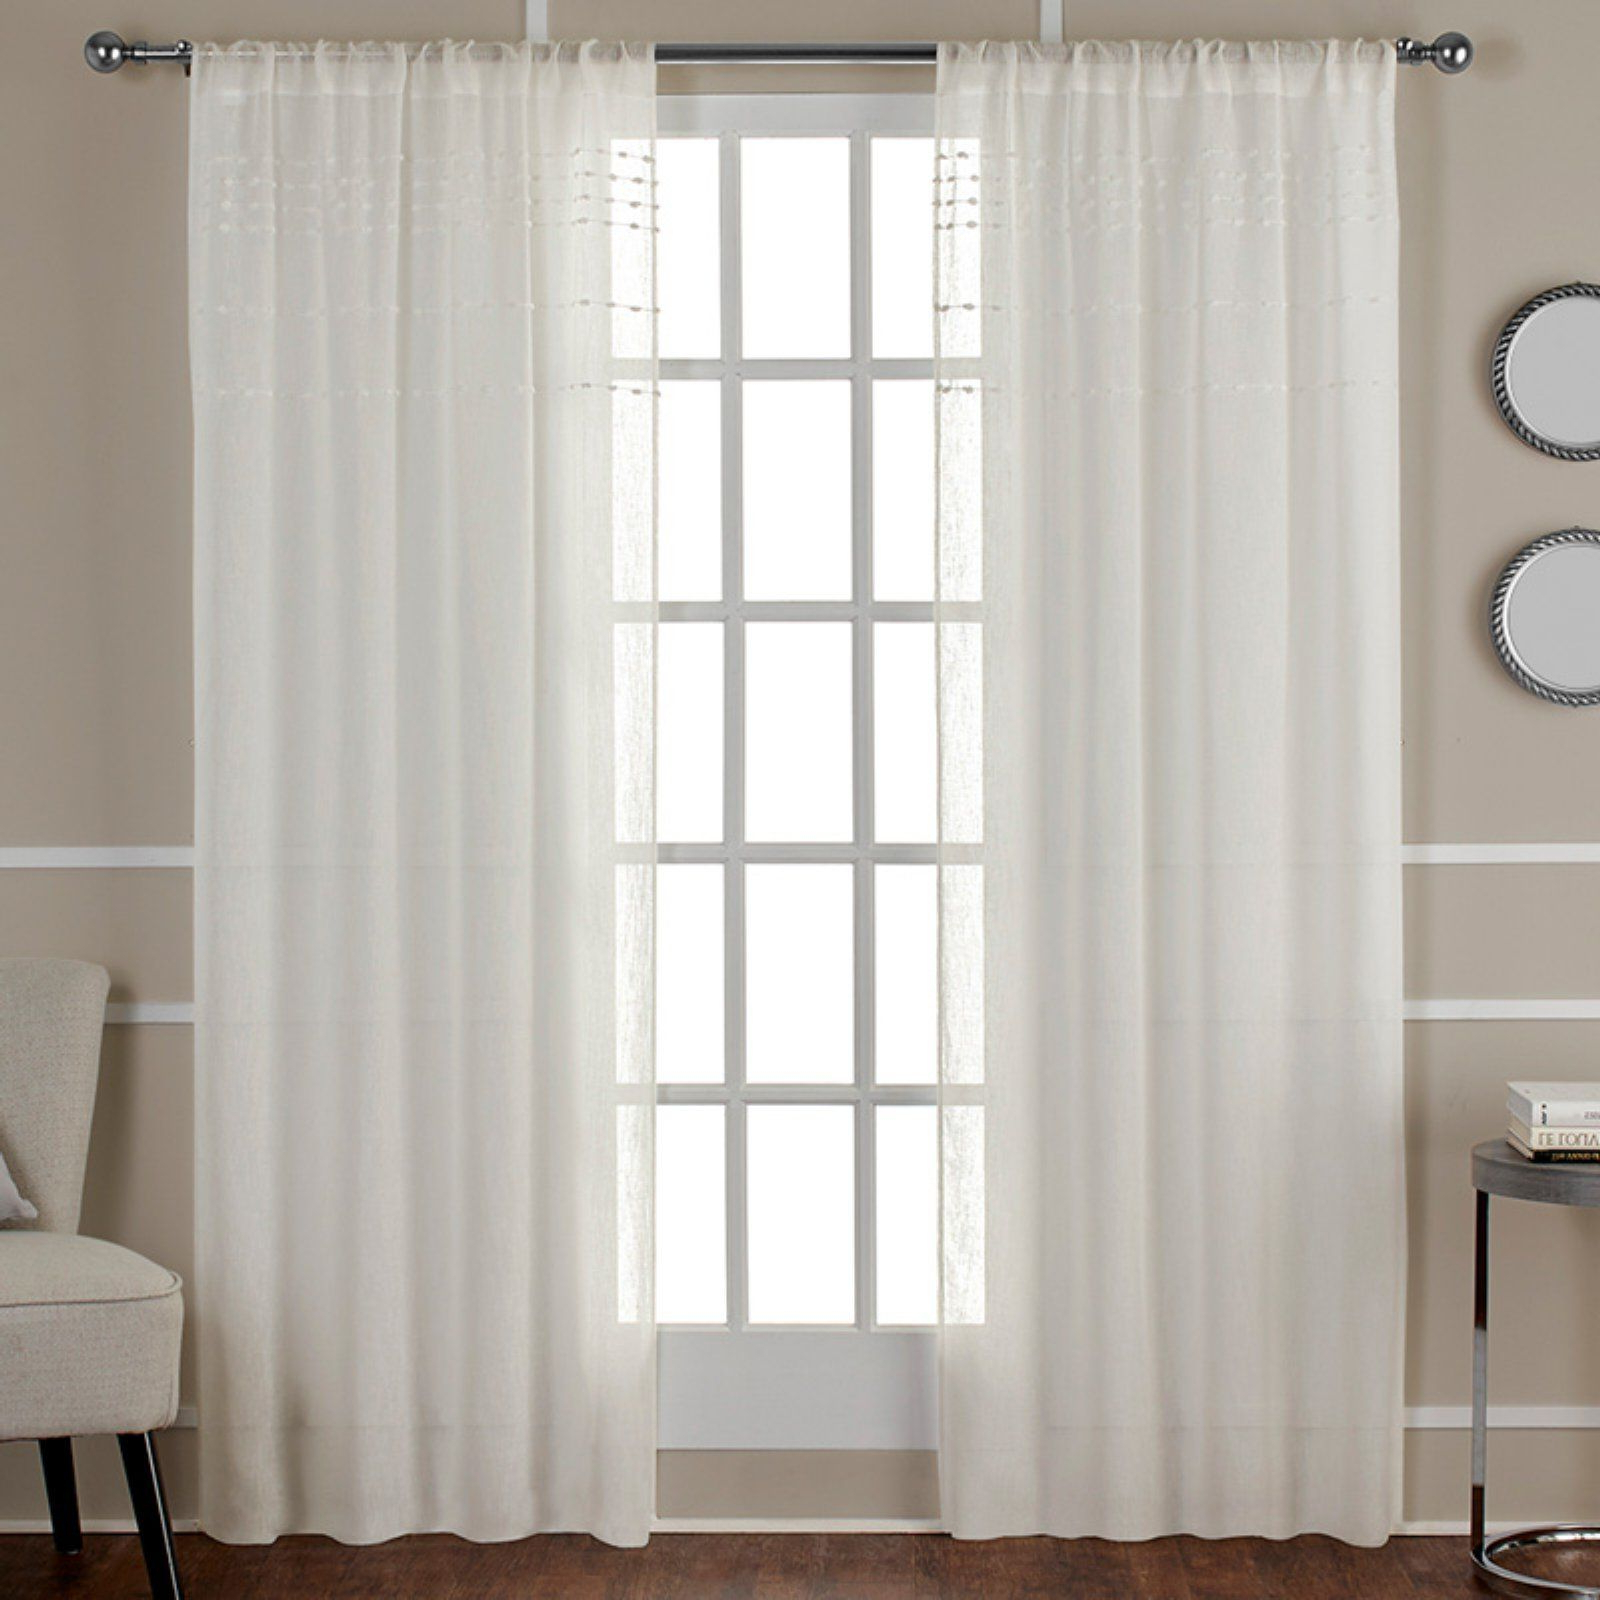 Widely Used Belgian Sheer Window Curtain Panel Pairs With Rod Pocket Within Exclusive Home Davos Puff Embellished Belgian Sheer Window (View 9 of 20)